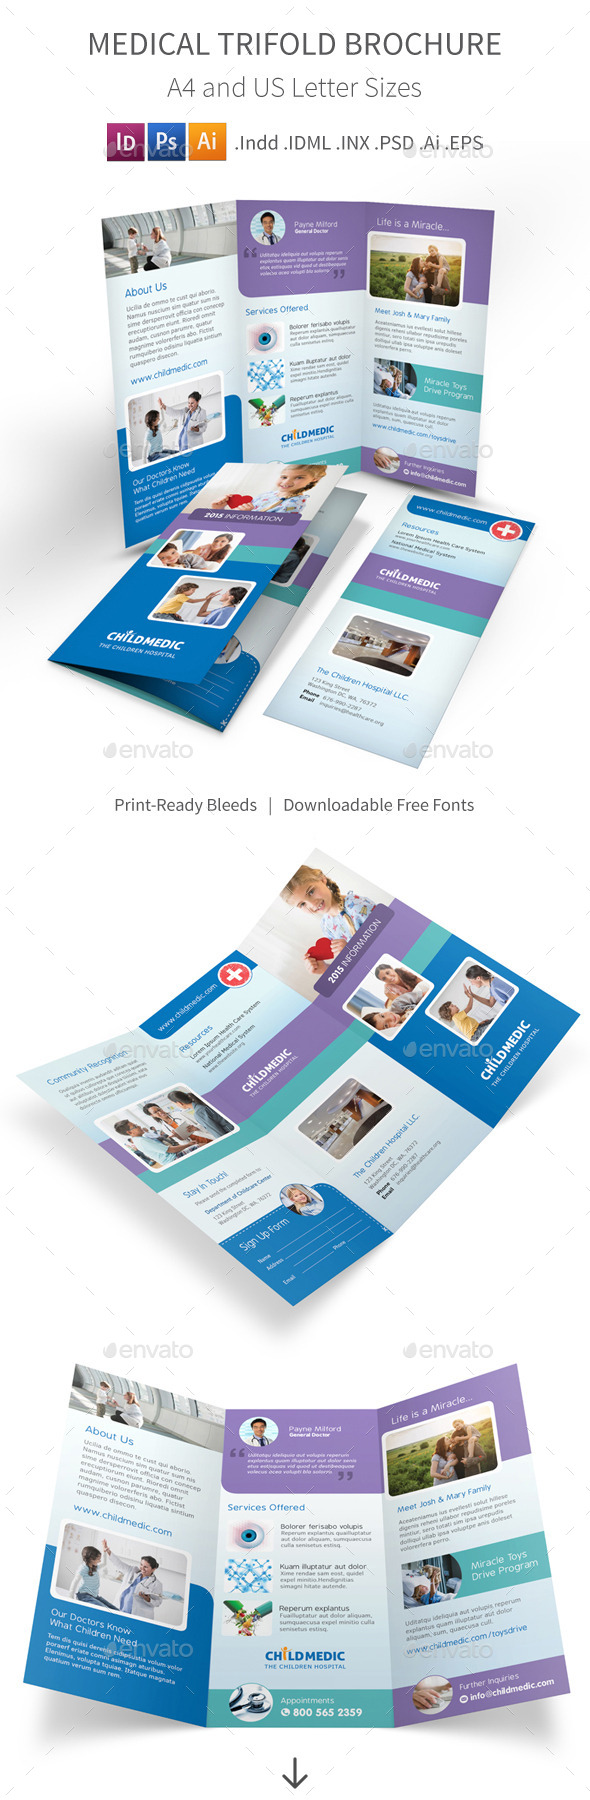 GraphicRiver Medical Trifold Brochure 11323453